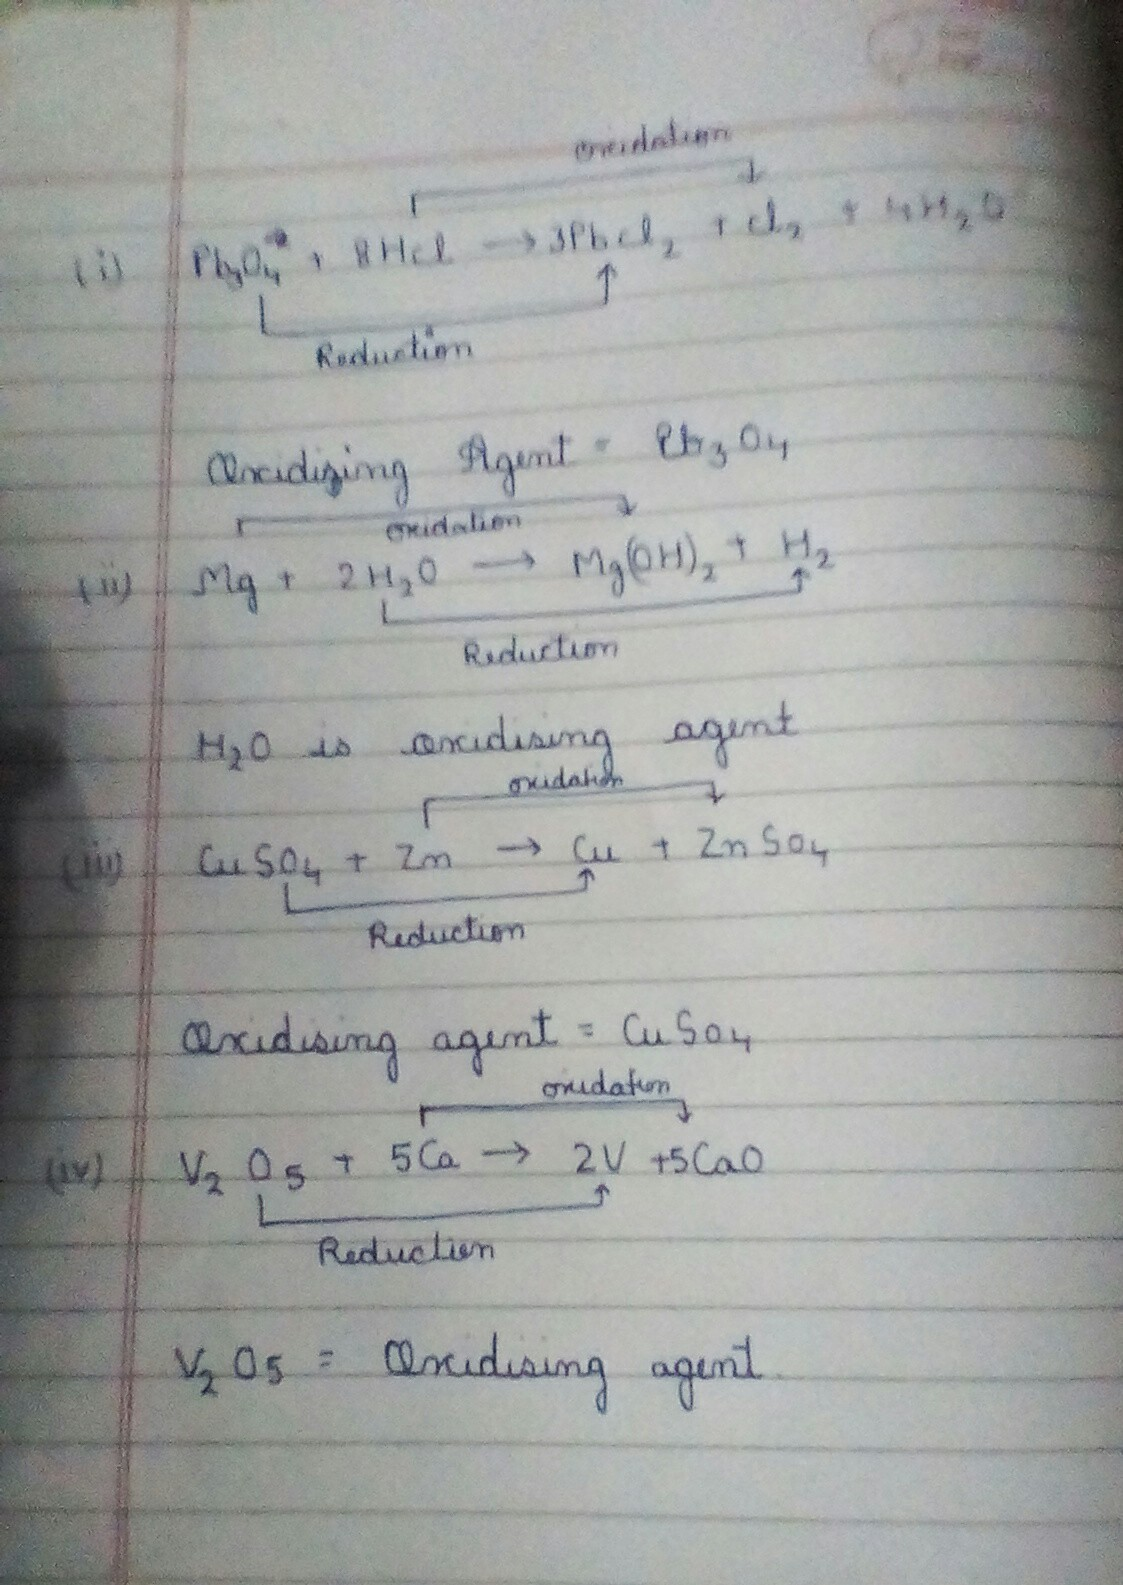 16 Identify The Oxidising Agent Oxidant In The